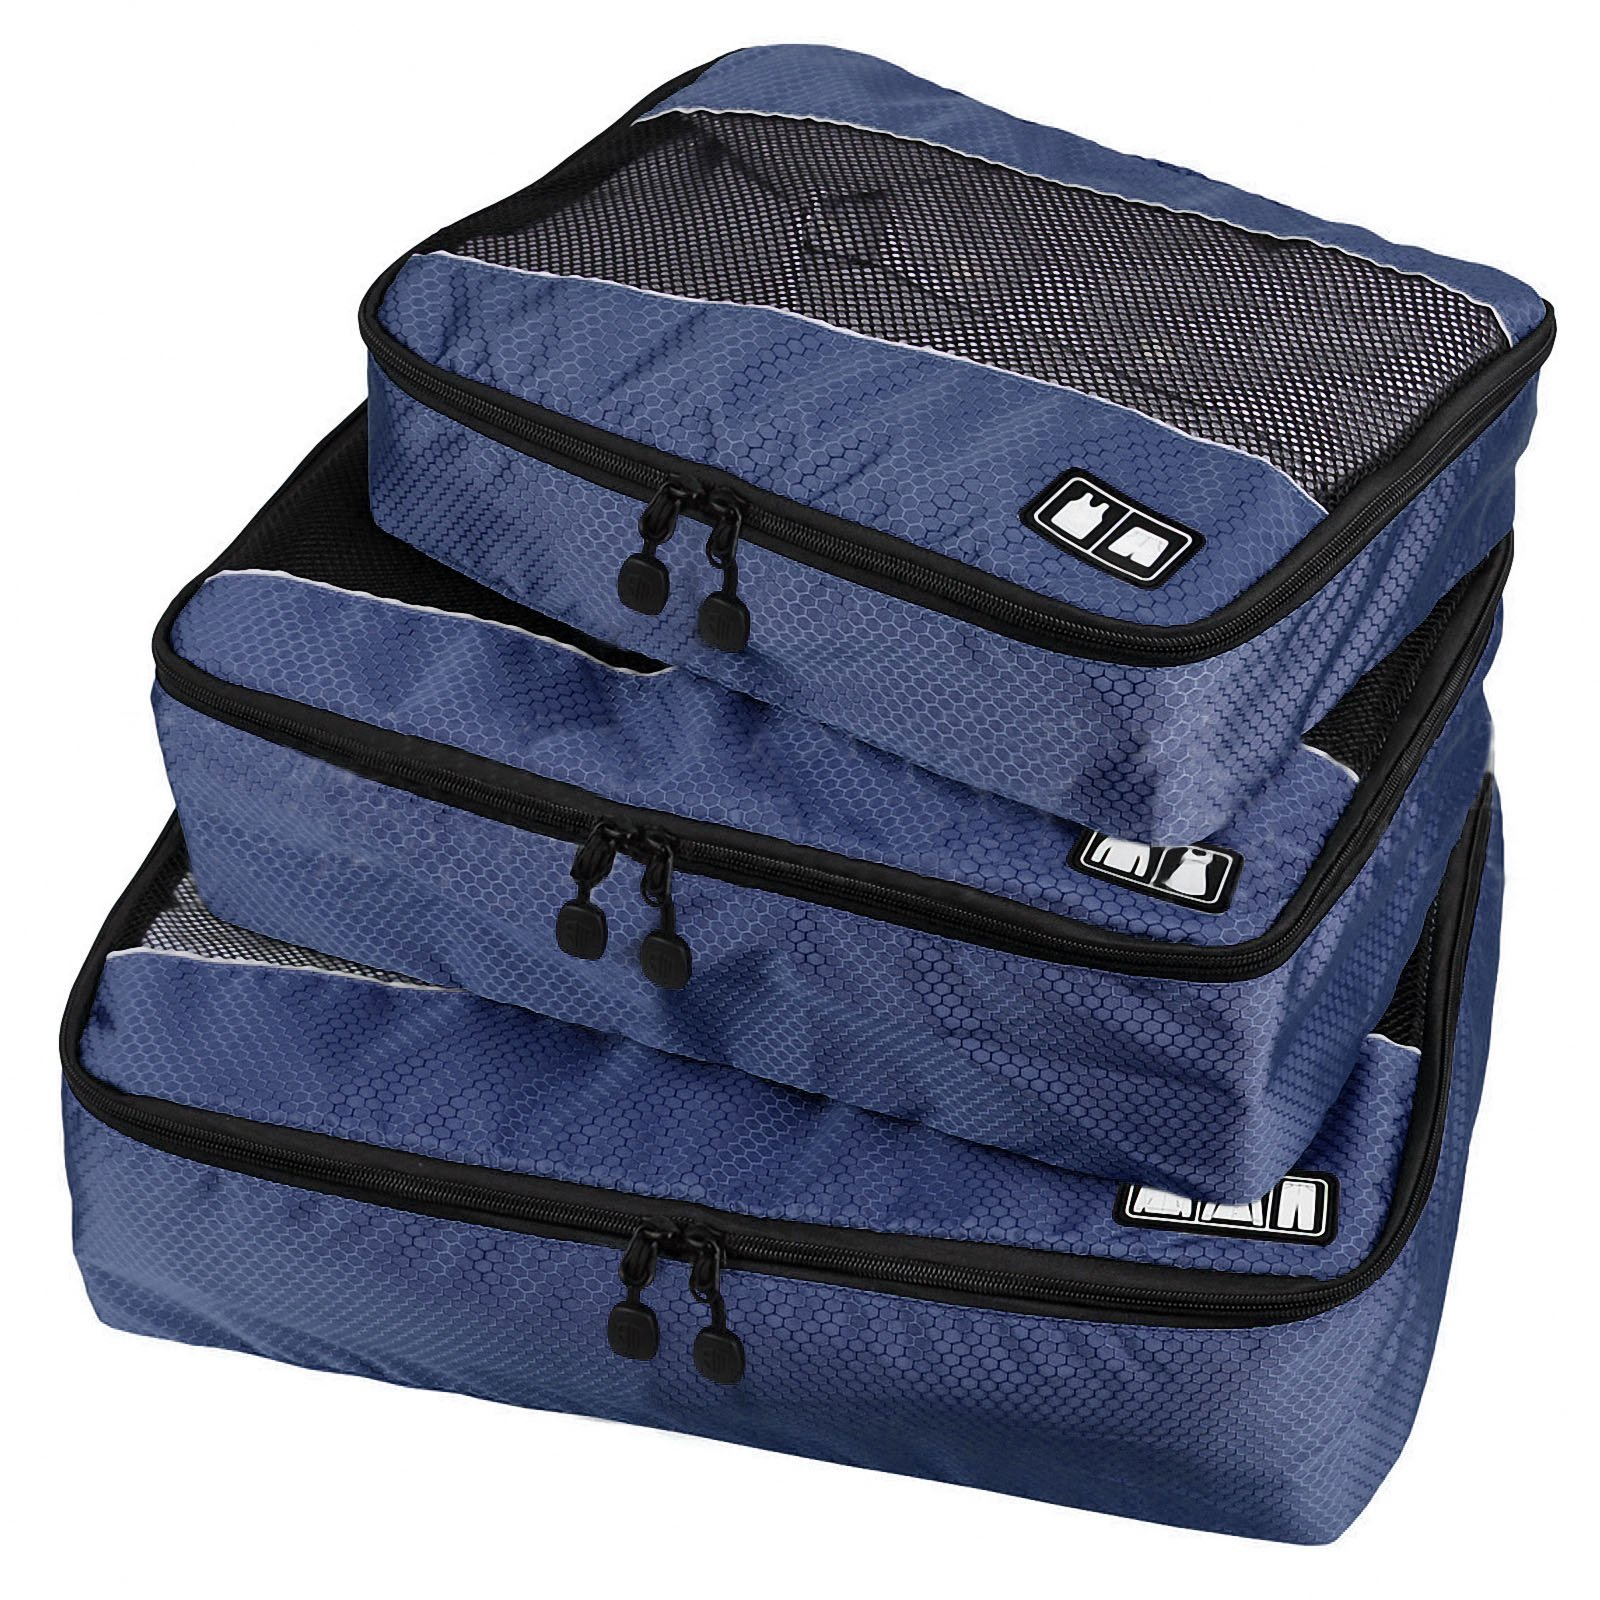 Travel Packing Organizers - Clothes Cubes Shoe Bags Laundry Pouches For Suitcase Luggage, Storage Organizer 3 Set Color Navy